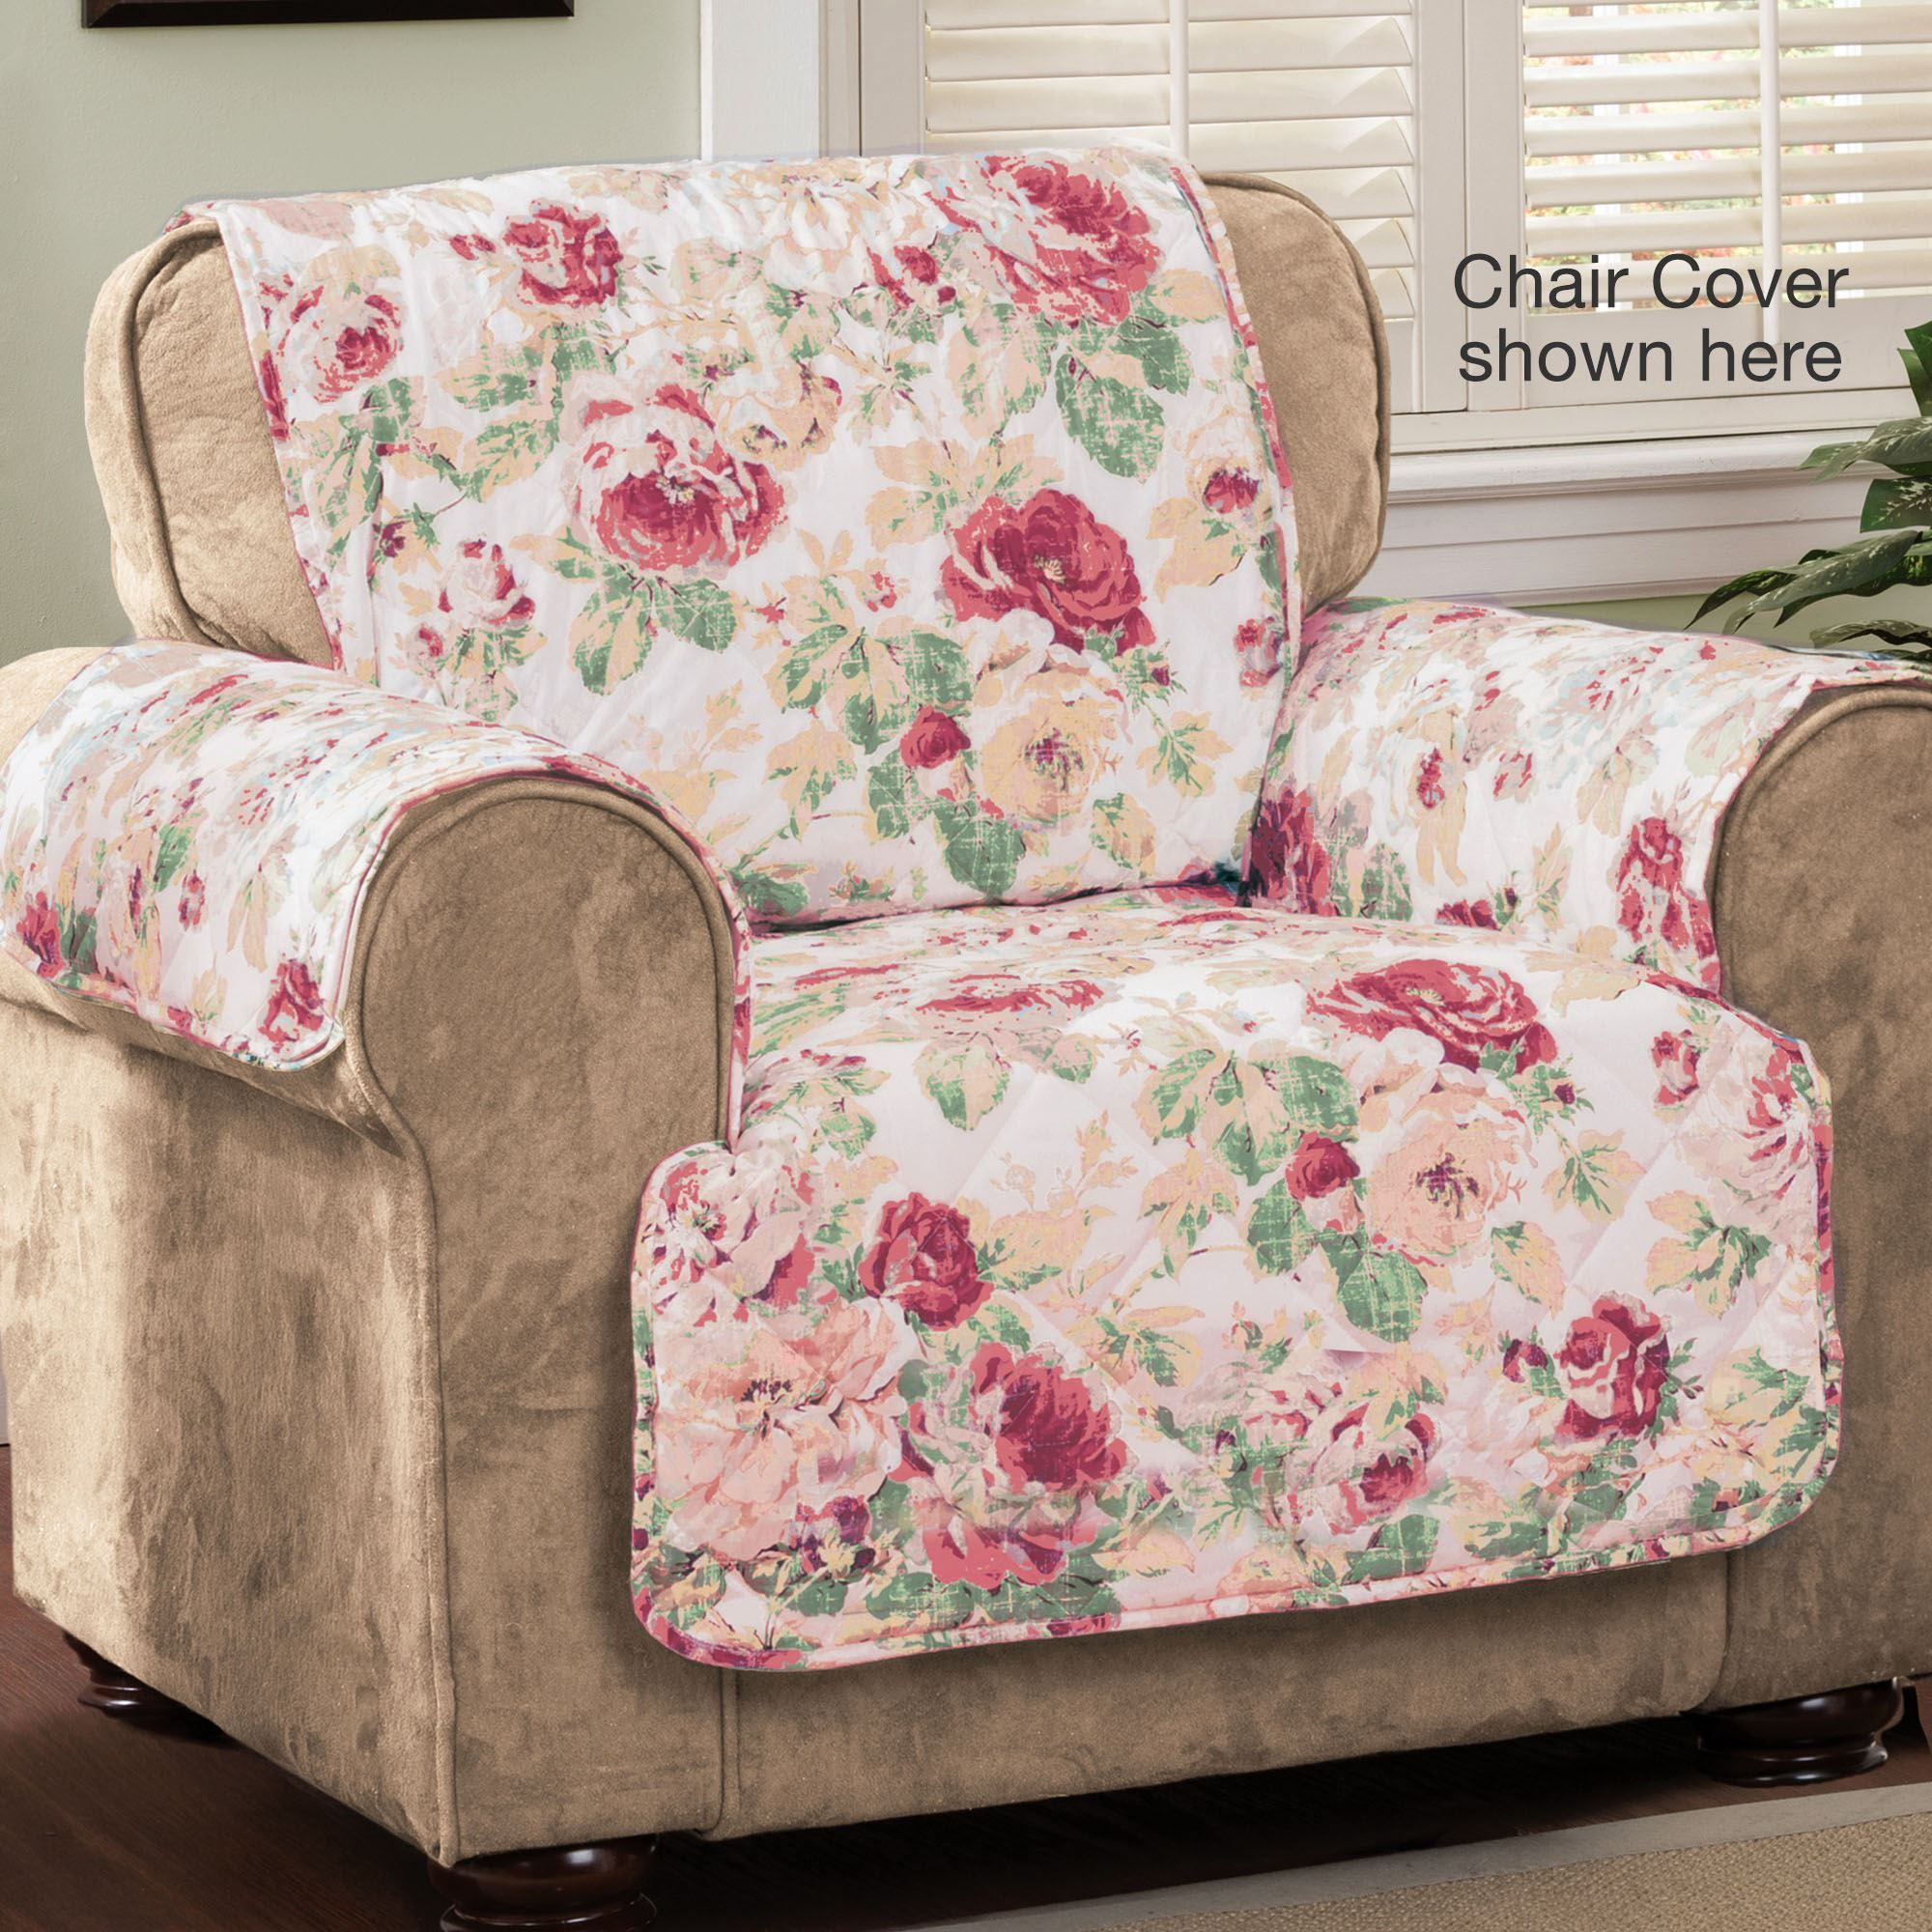 Ordinaire English Floral Furniture Protector Cover Tea Rose Chair